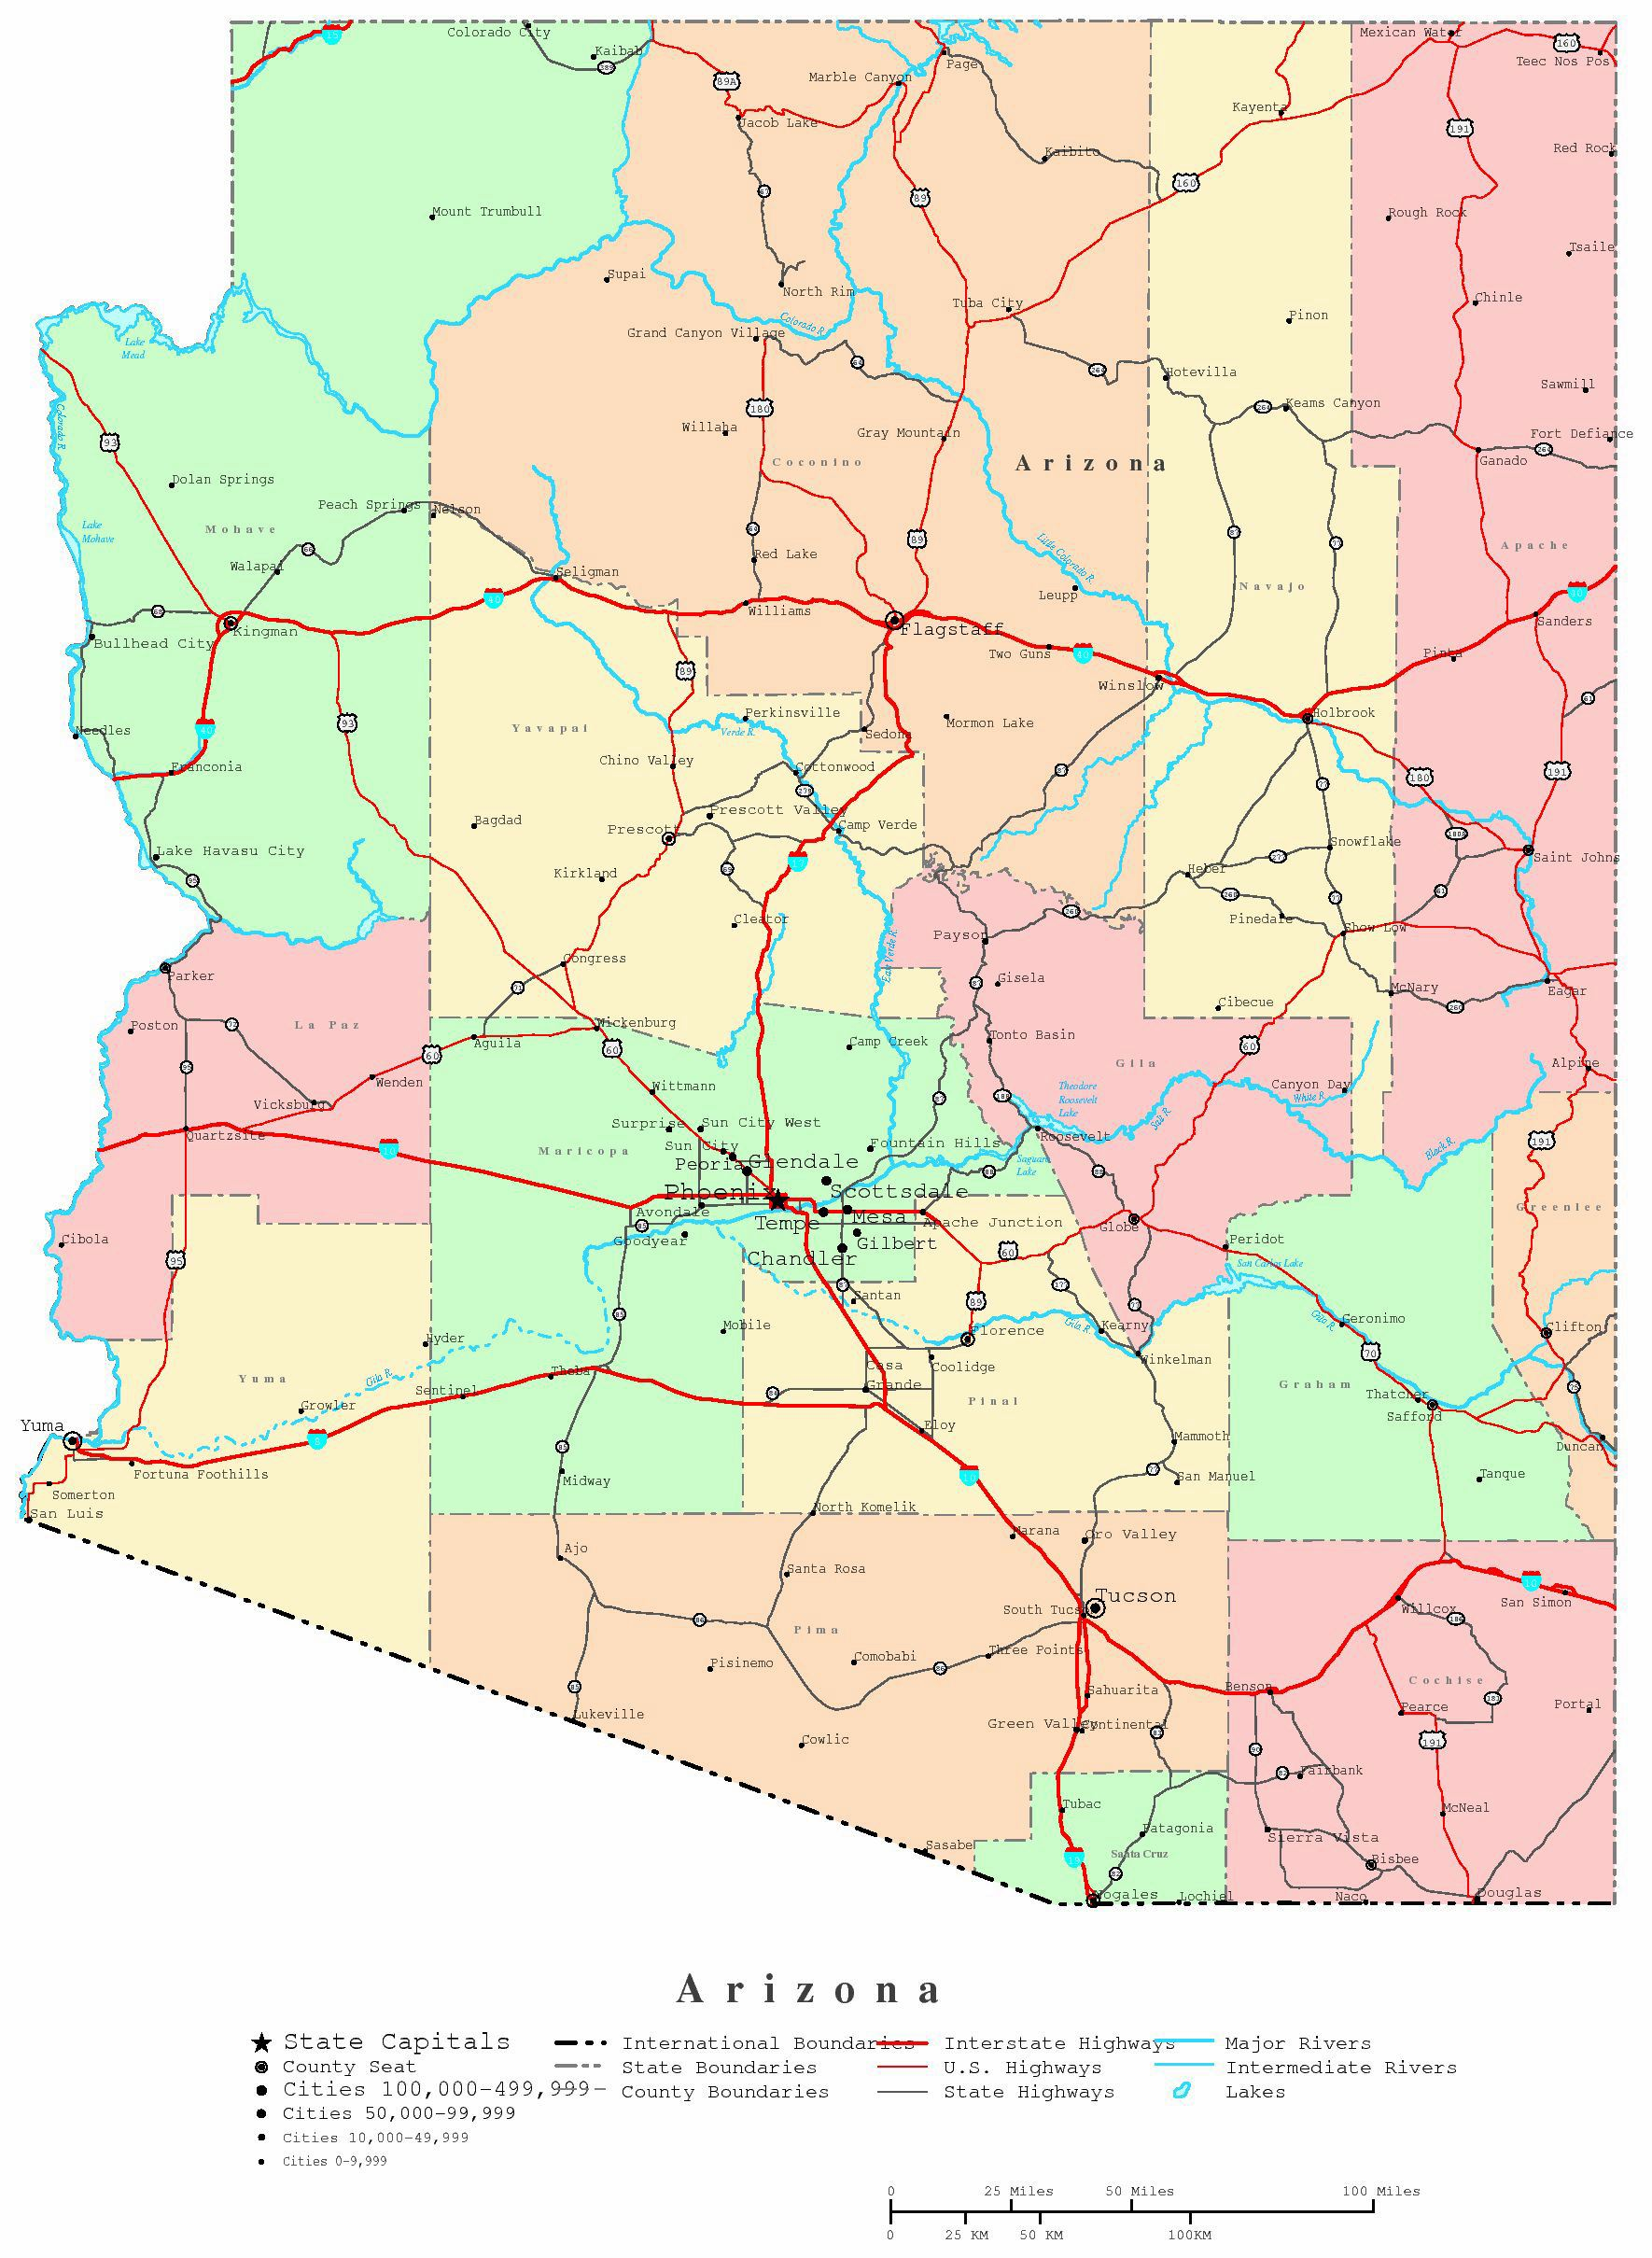 A Map Of Arizona State.Large Arizona Maps For Free Download And Print High Resolution And